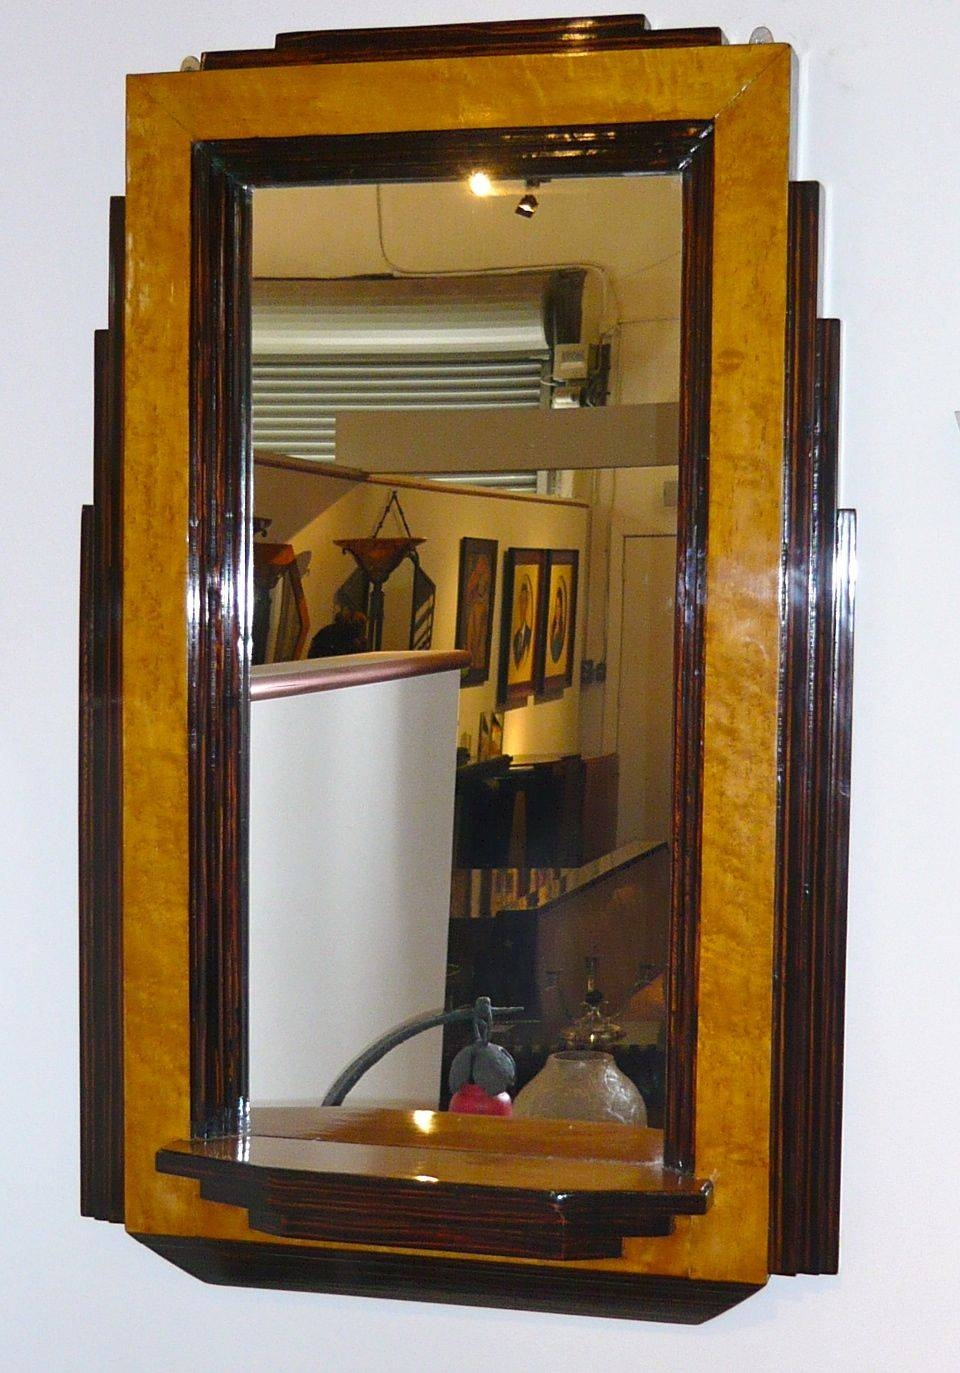 Art Deco Mirrors For Sale | Art Deco Collection Throughout Art Nouveau Mirrors (View 22 of 25)